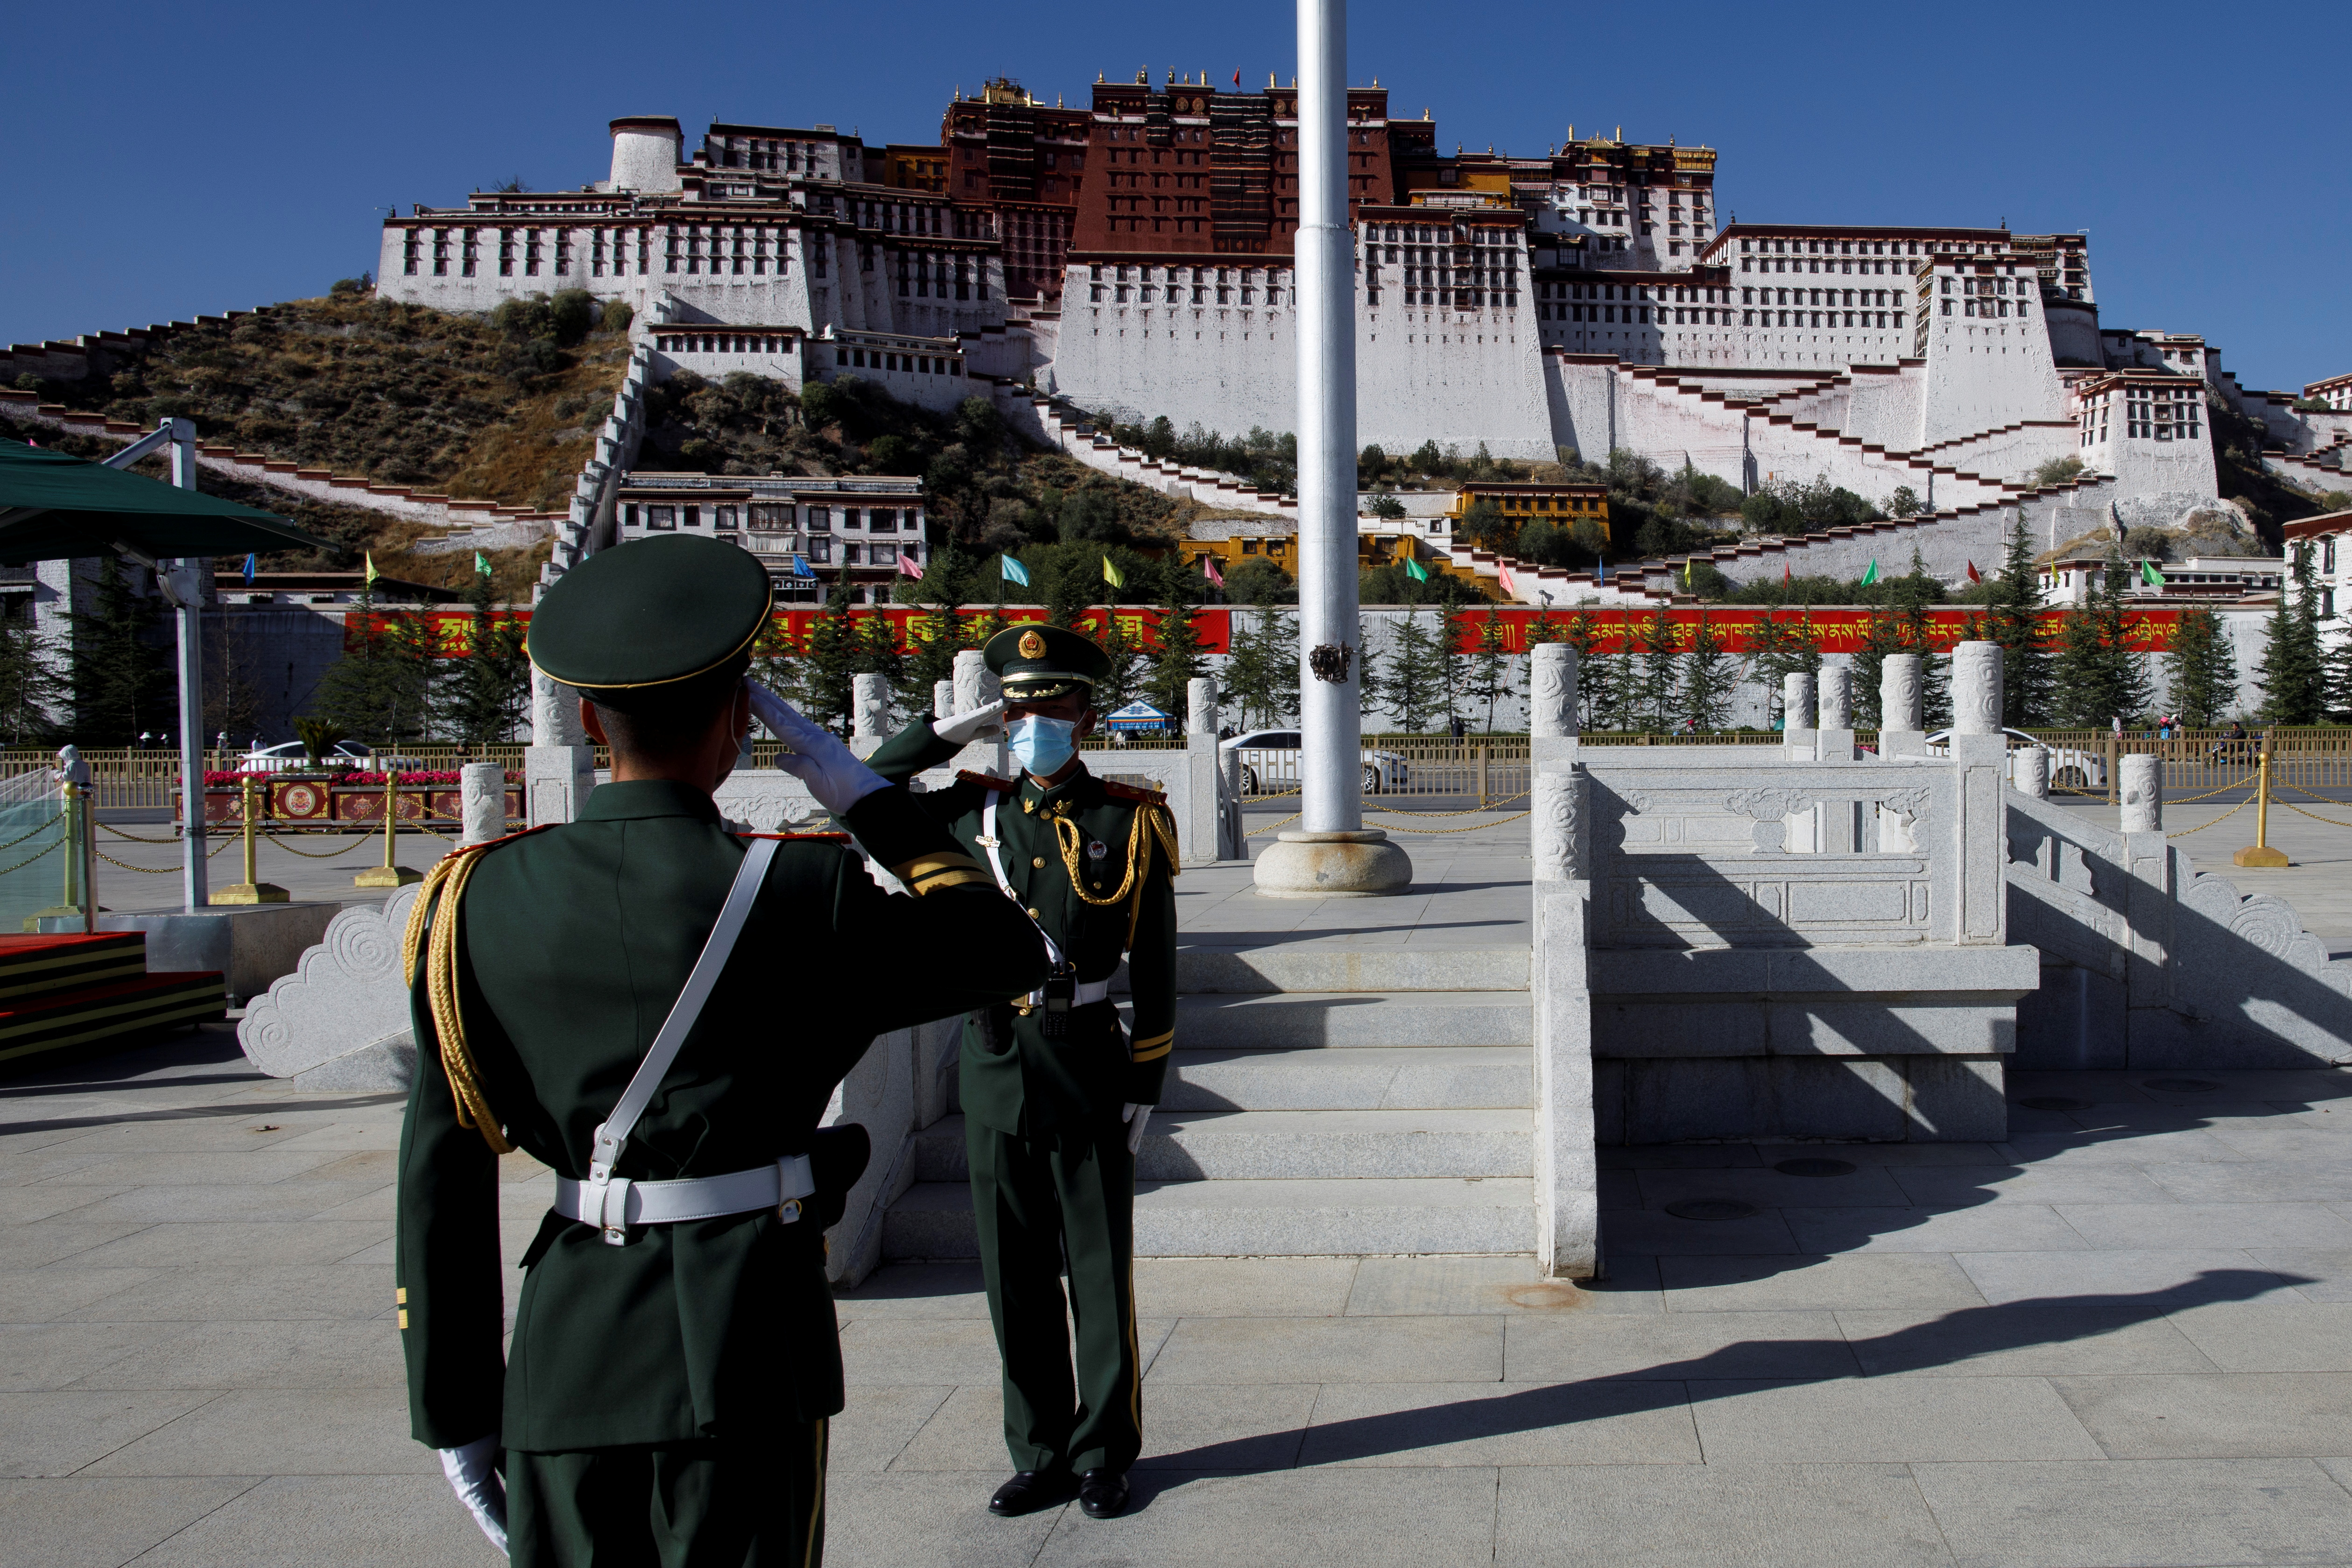 Paramilitary police officers salute during a change of flag duty in front of Potala Palace in Lhasa during a government-organised tour of the Tibet Autonomous Region, China, October 15, 2020.  Picture taken October 15, 2020.  REUTERS/Thomas Peter